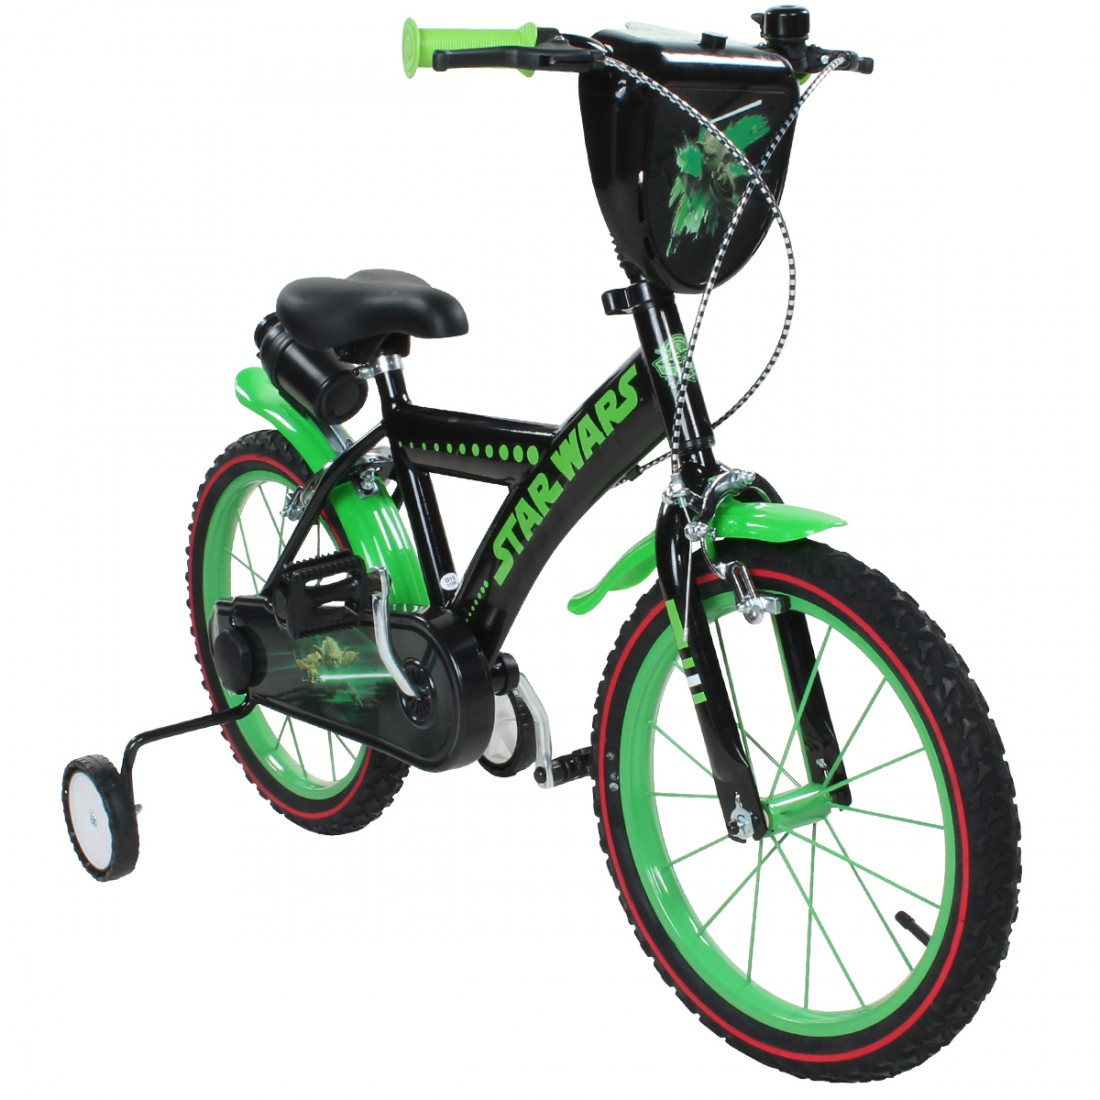 disney star wars yoda 16 zoll kinderrad fahrrad kinderfahrrad. Black Bedroom Furniture Sets. Home Design Ideas